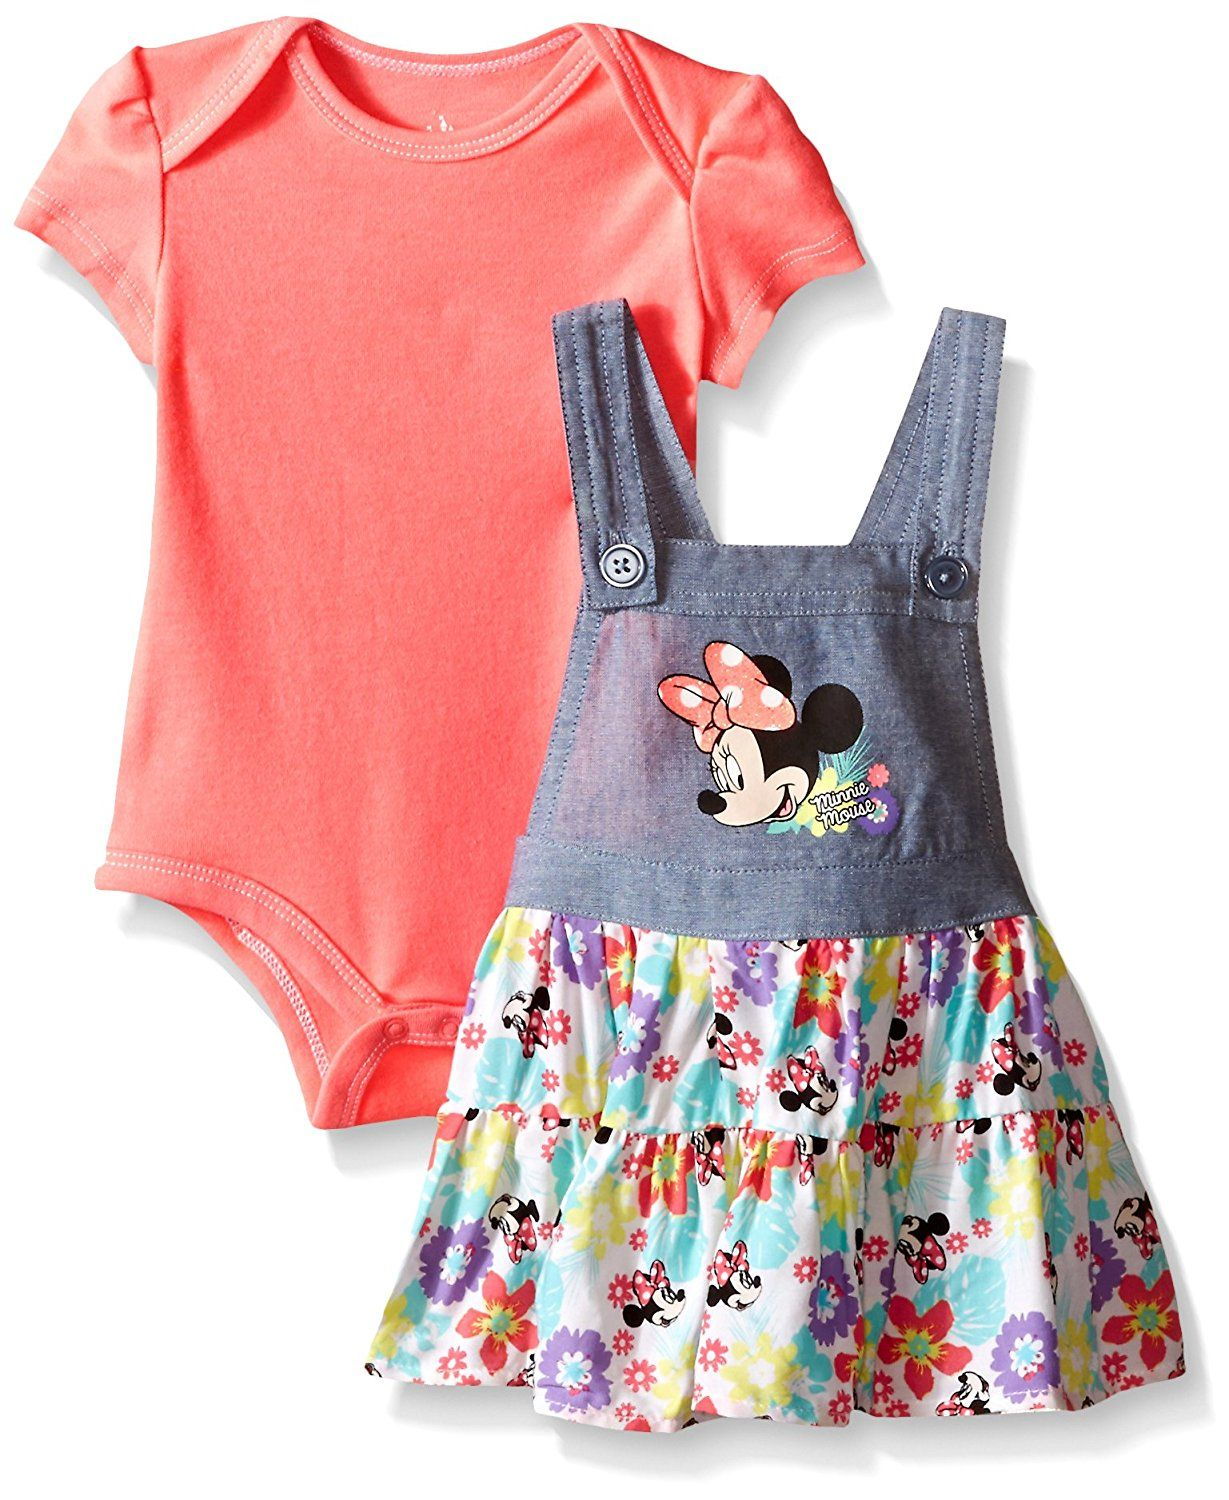 2b487aa20f59 Disney Baby Girls  Minnie Mouse Jumper Set (Pack of 2) -- Remarkable ...